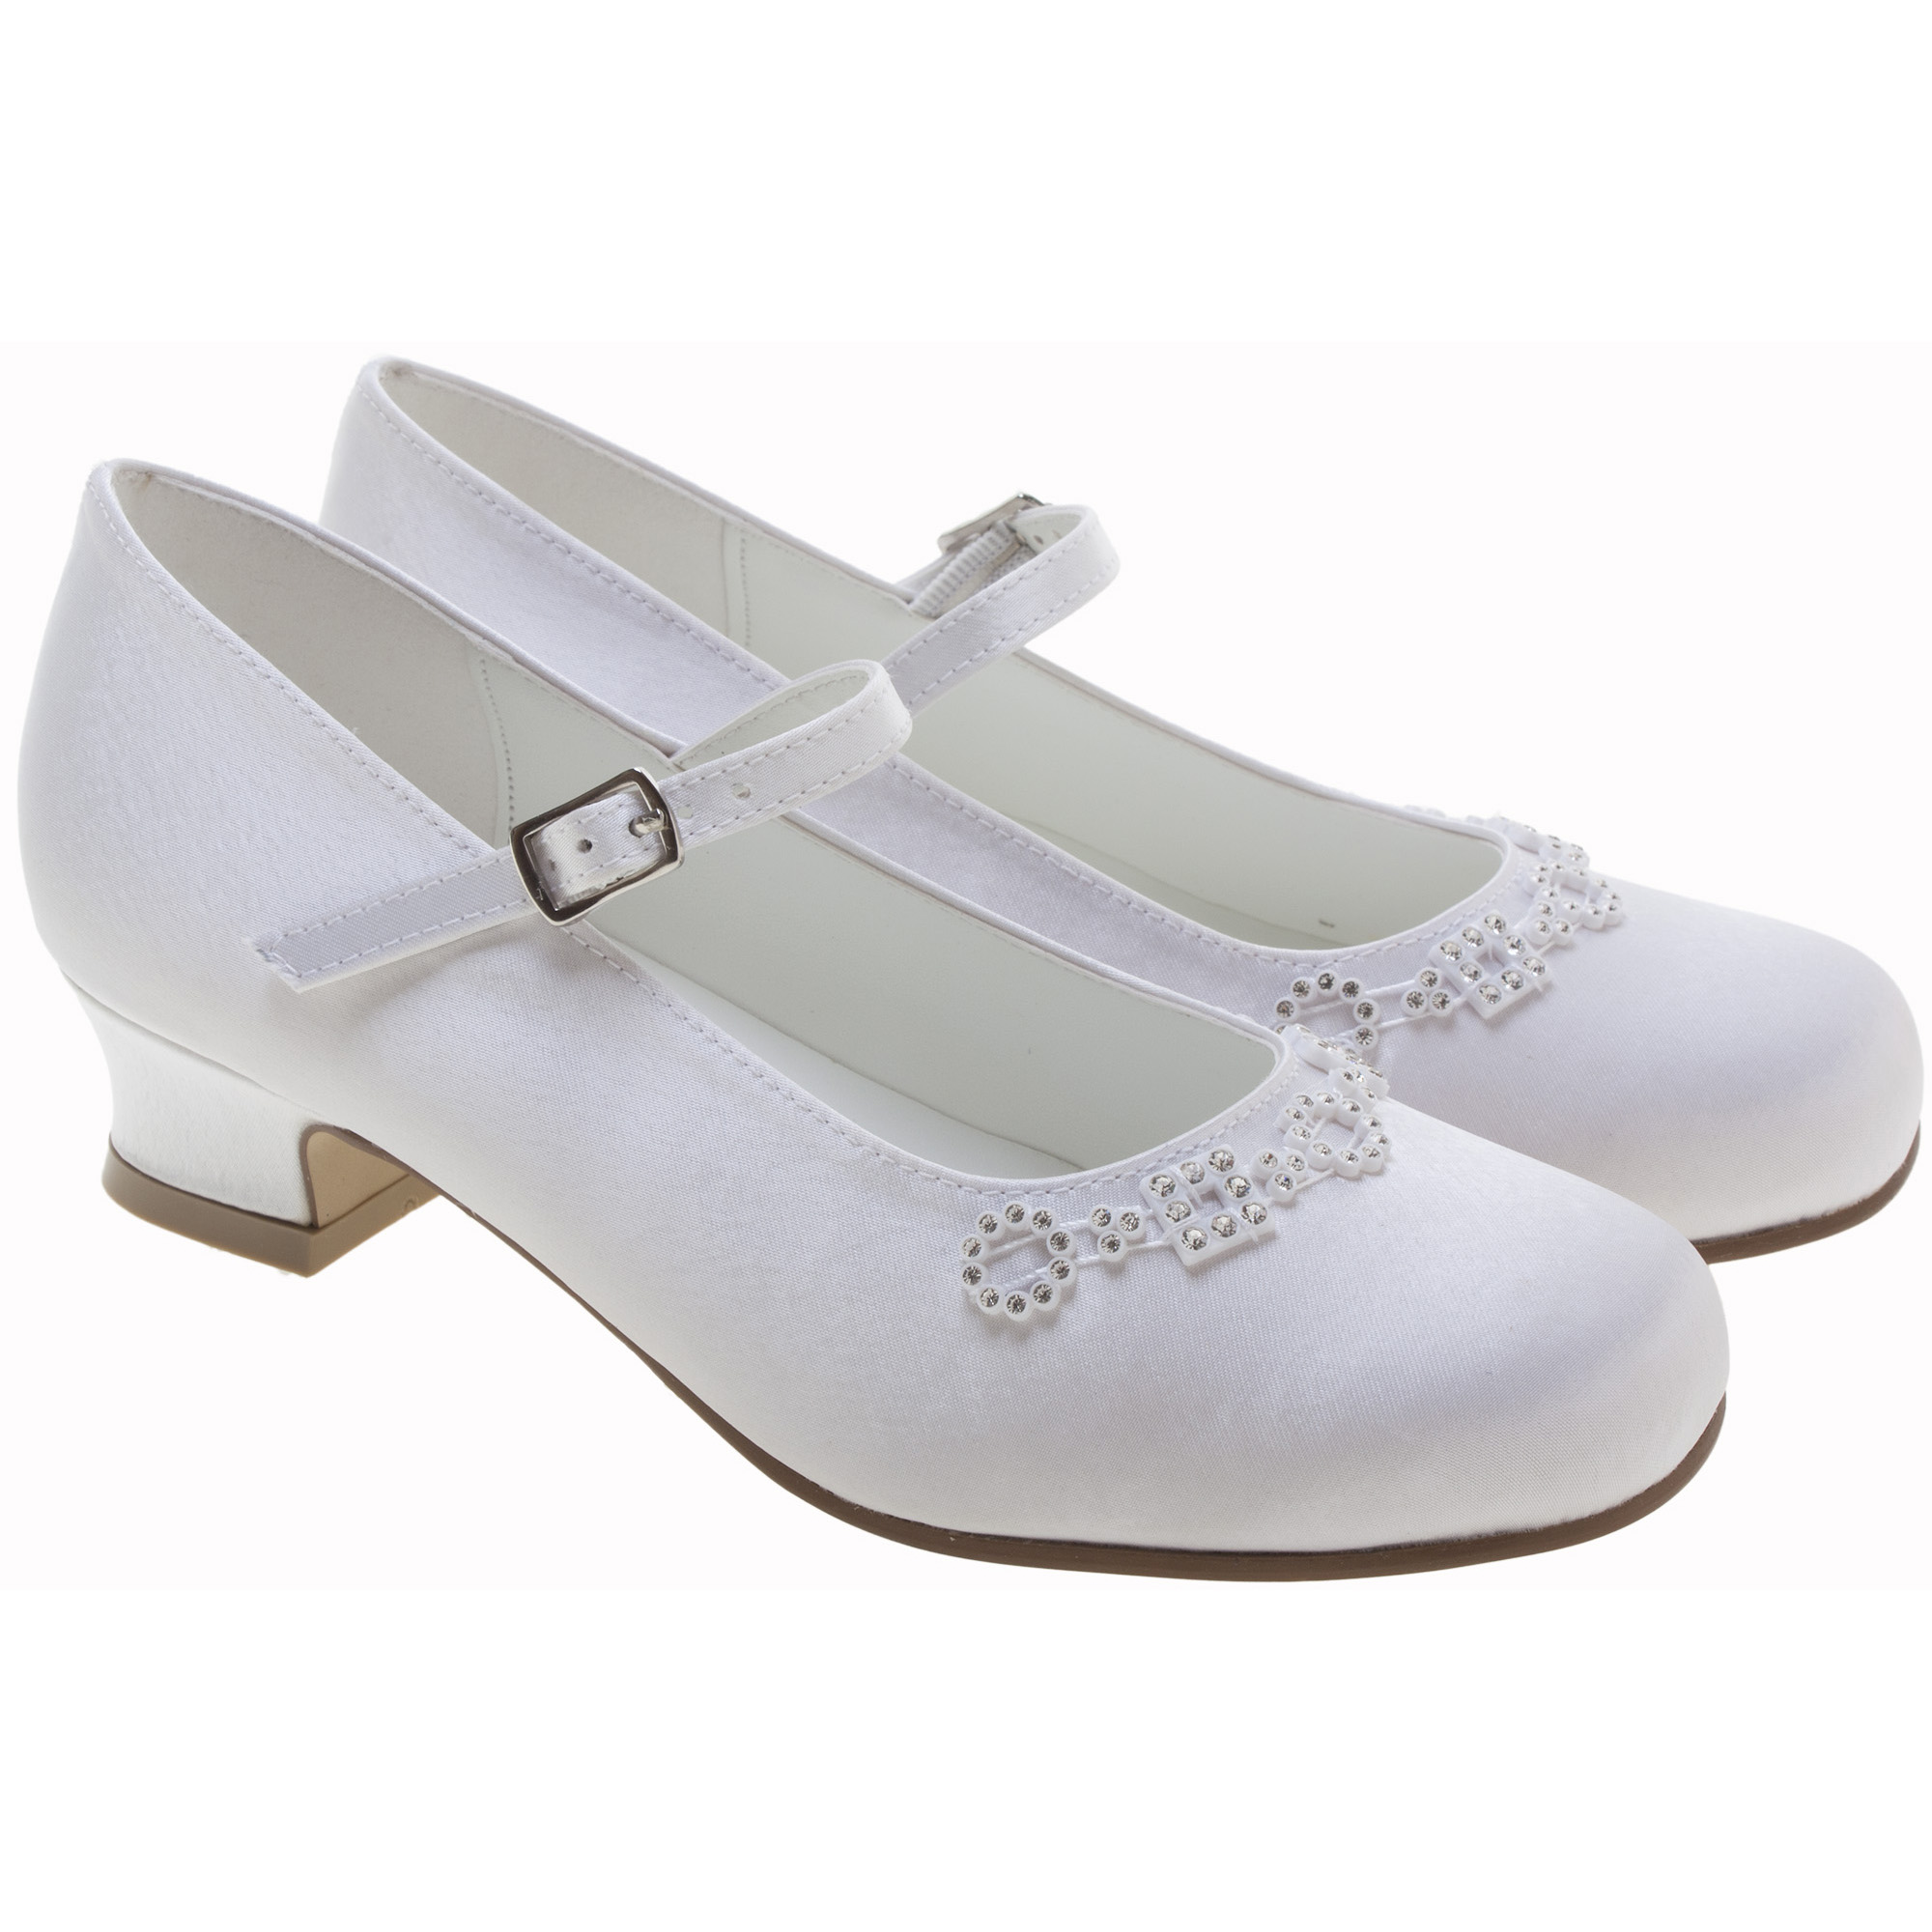 Find pretty flower girl shoes at David's Bridal. Our girls' dress shoes collection includes various styles & colors, such as ivory & white. Shop today!